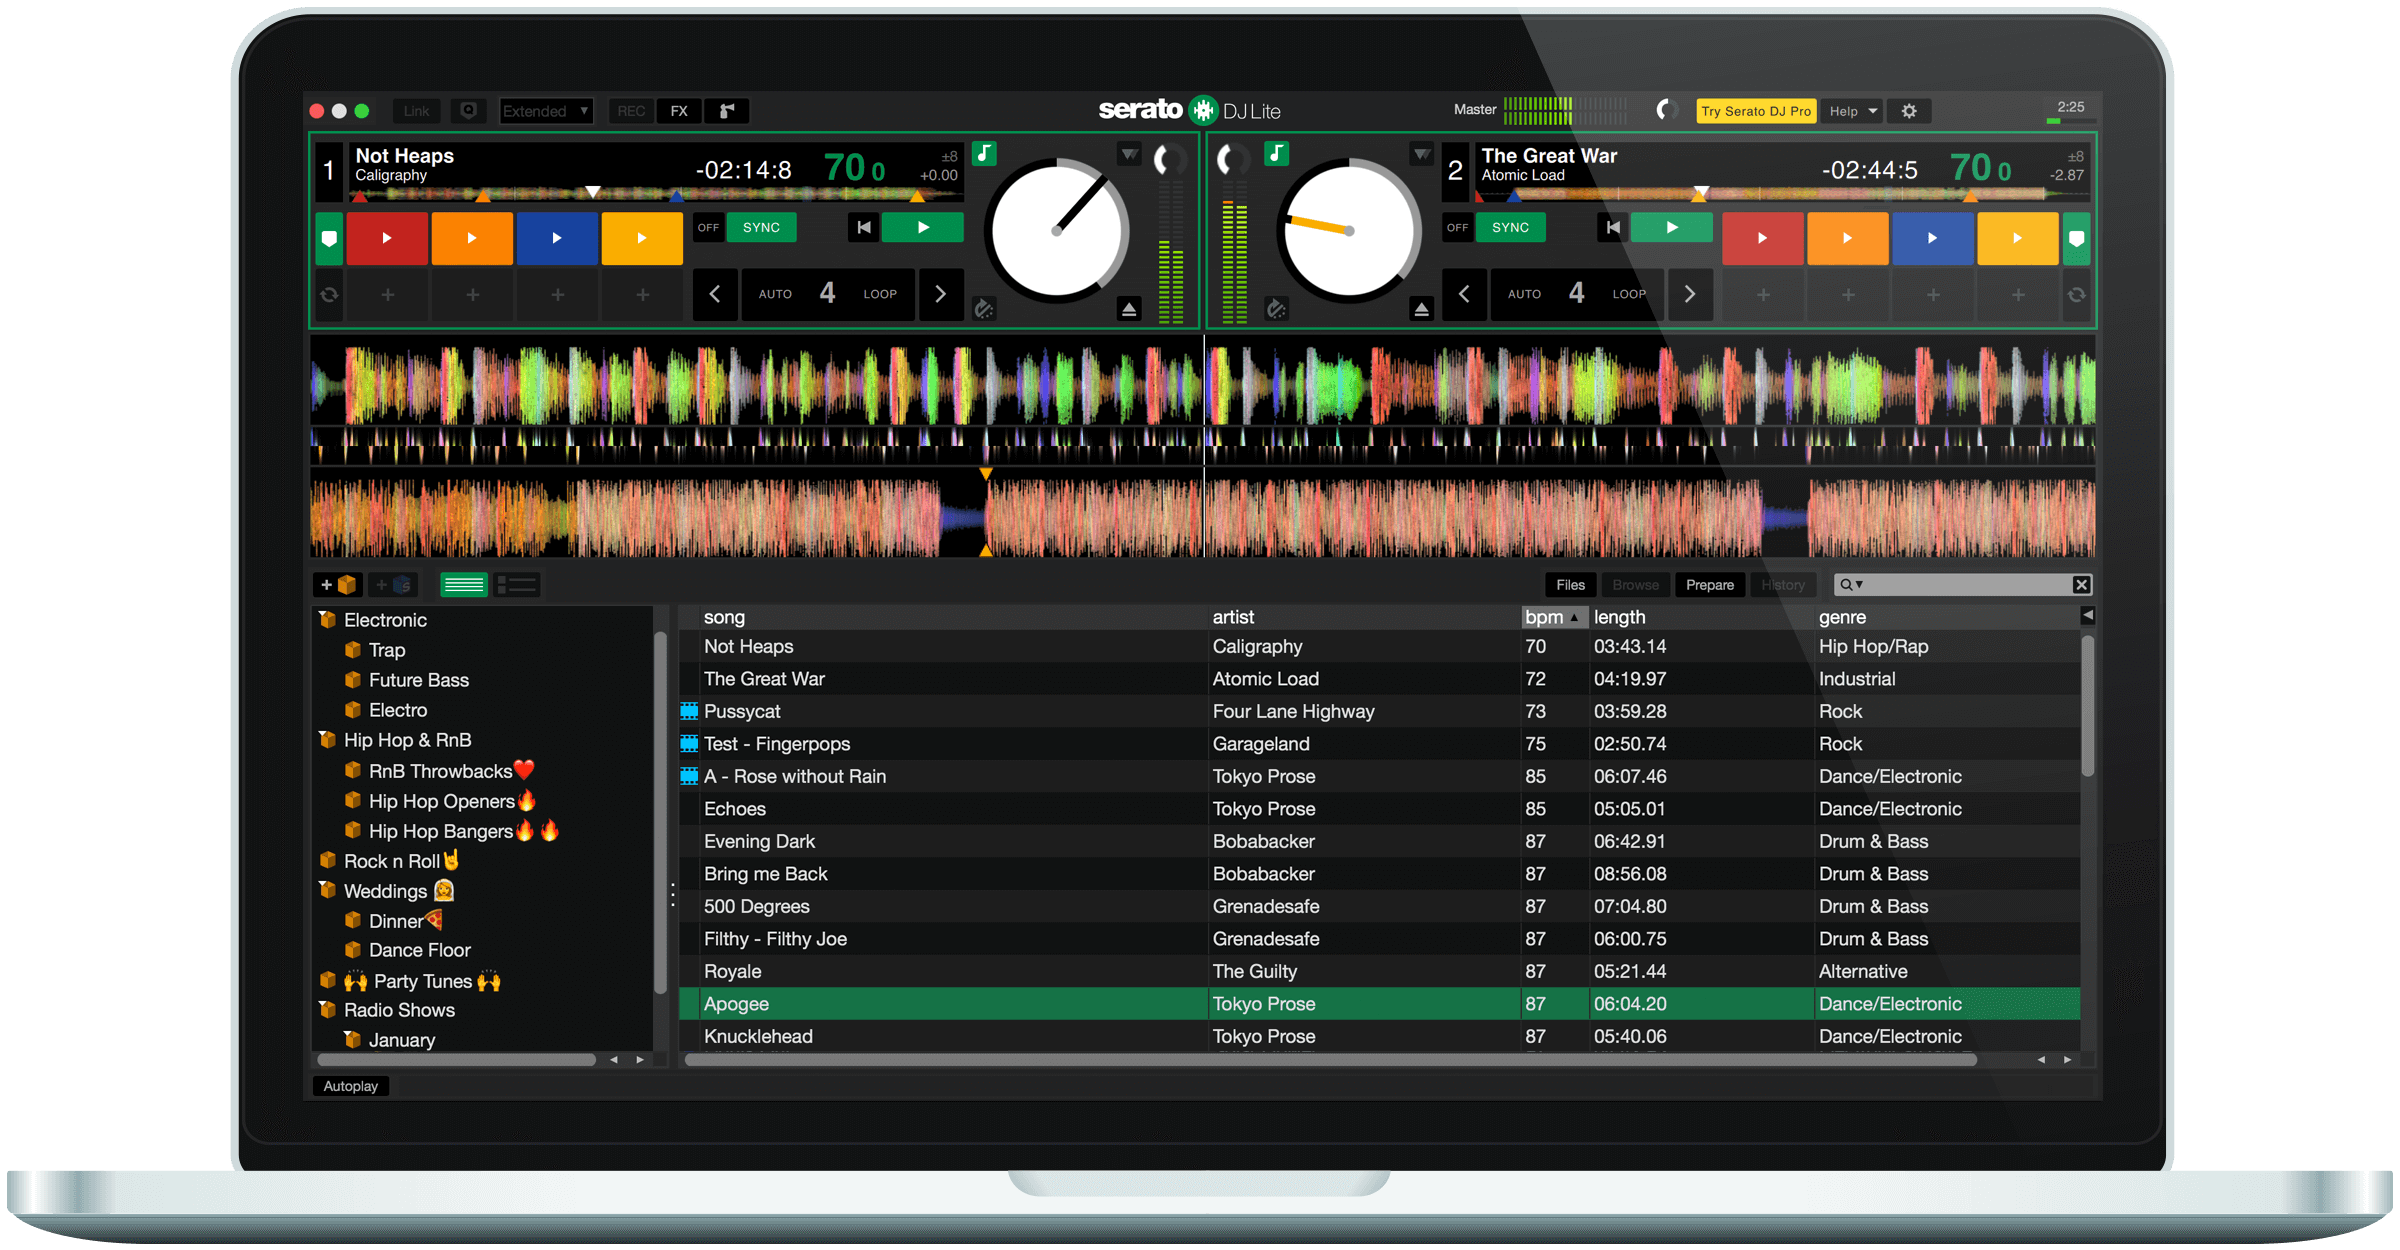 Serato DJ Lite full screenshot